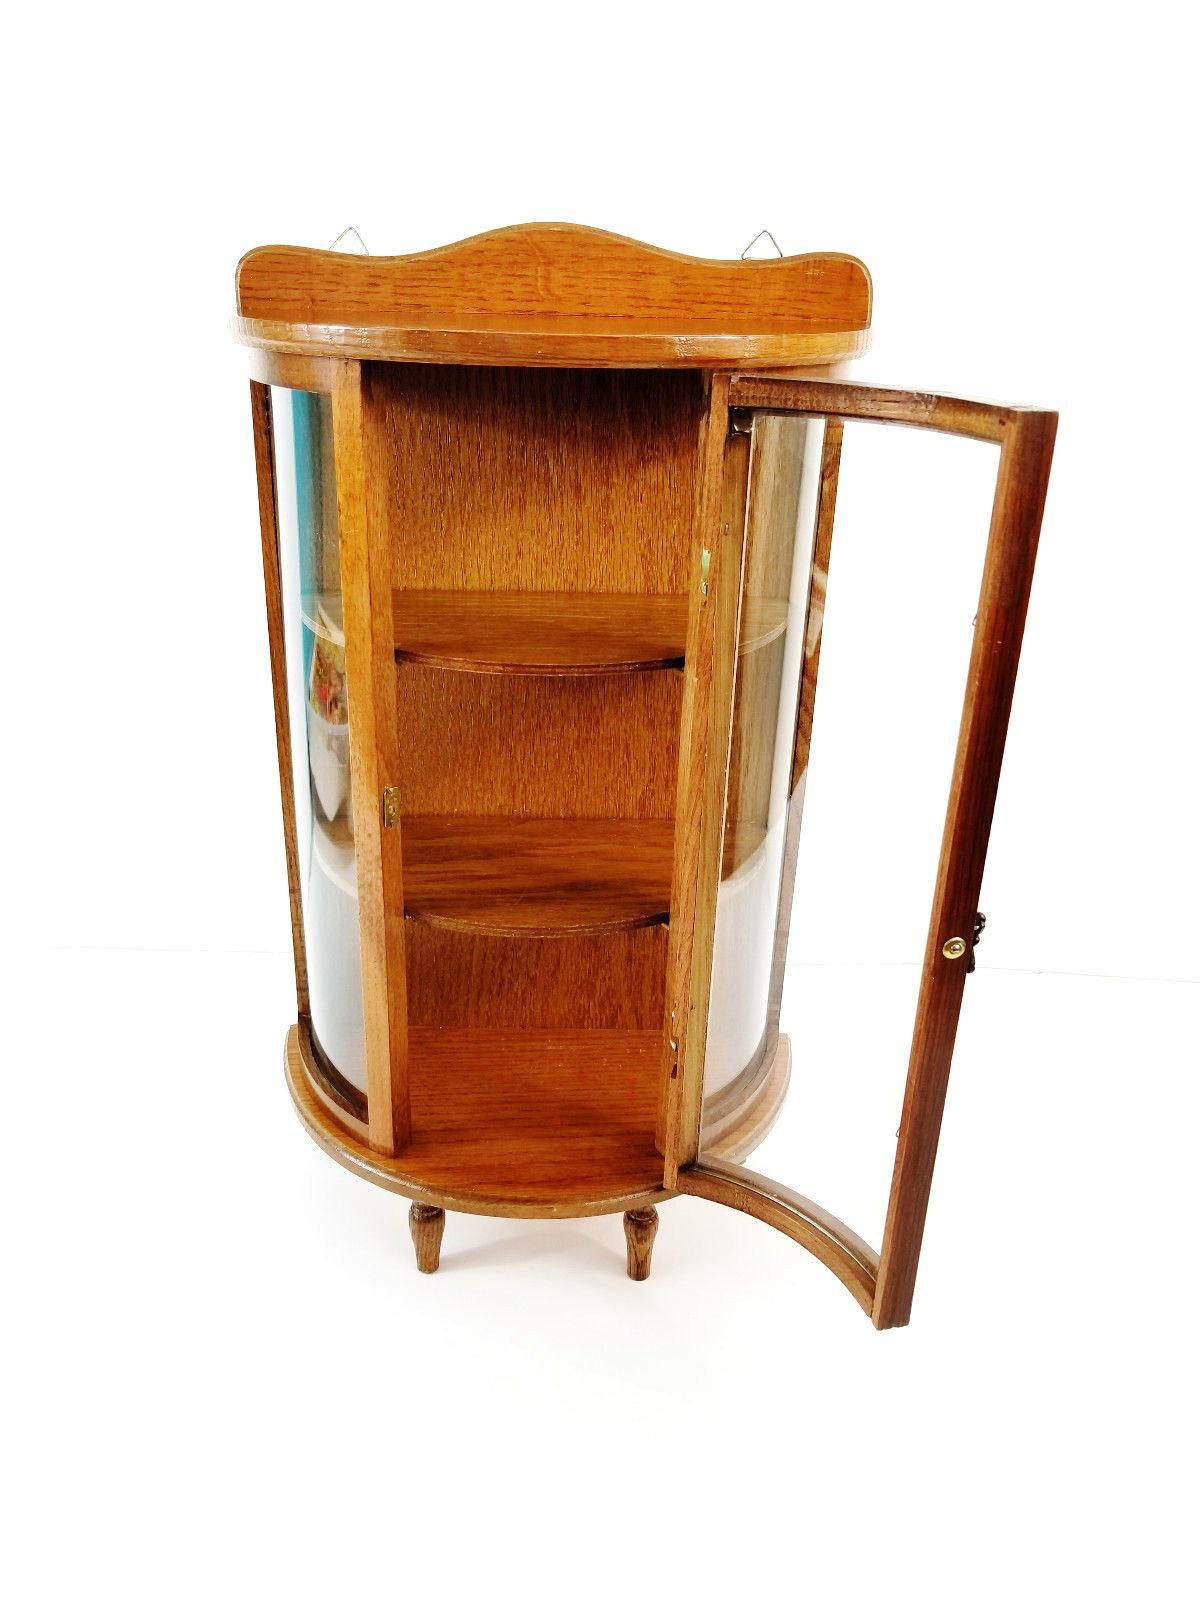 This Charming Wood Curved Glass Curio Cabinet Is Perfect For Displaying  Your Most Cherished Pieces!